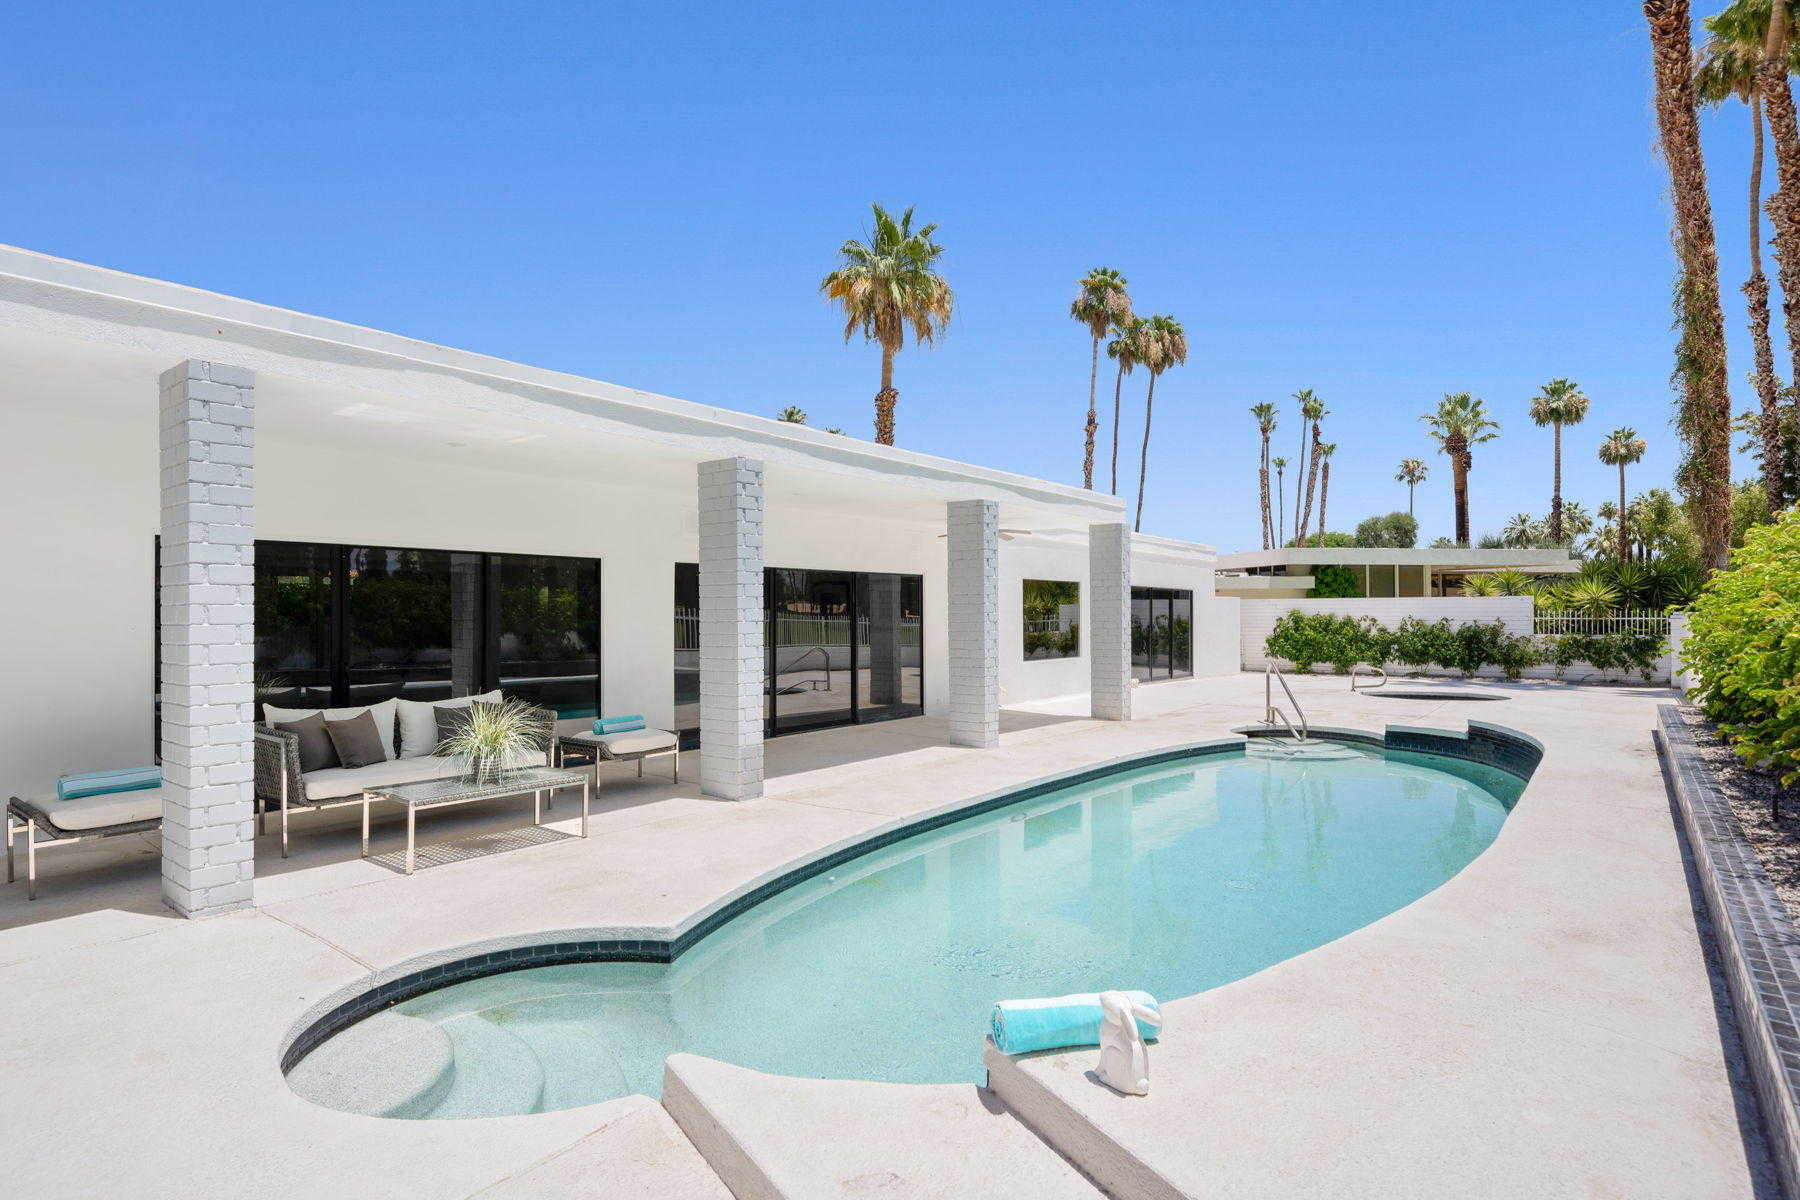 $1,425,000 - 4Br/4Ba -  for Sale in Thunderbird Country Club, Rancho Mirage